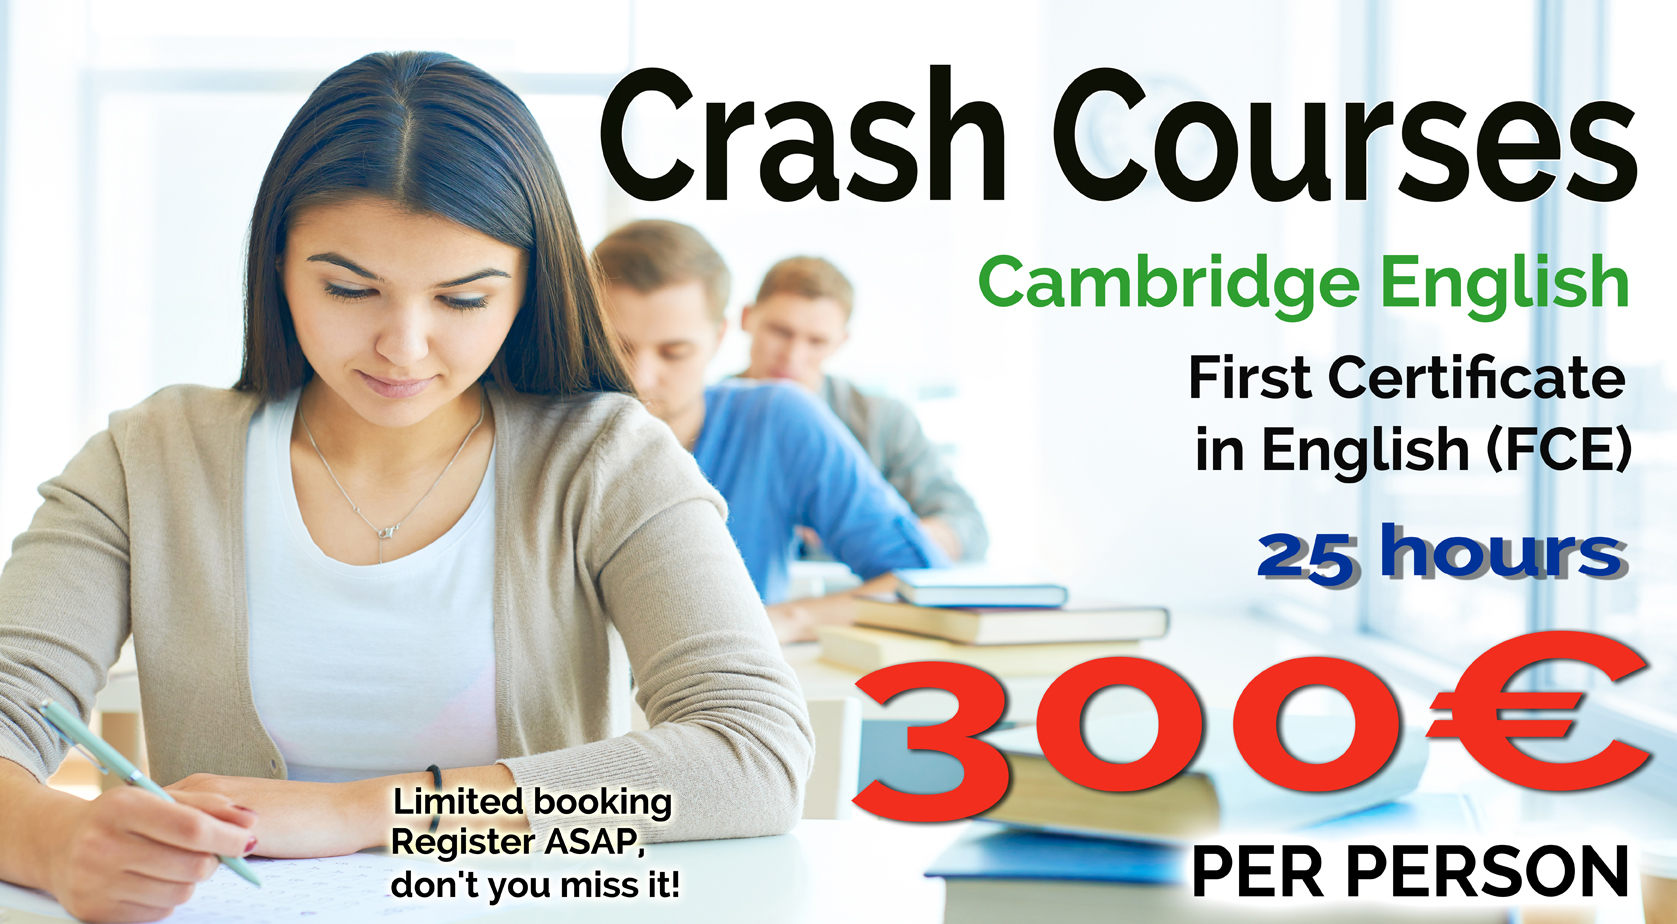 Crash Courses Cambridge English FCE http://martinsways.com/en/